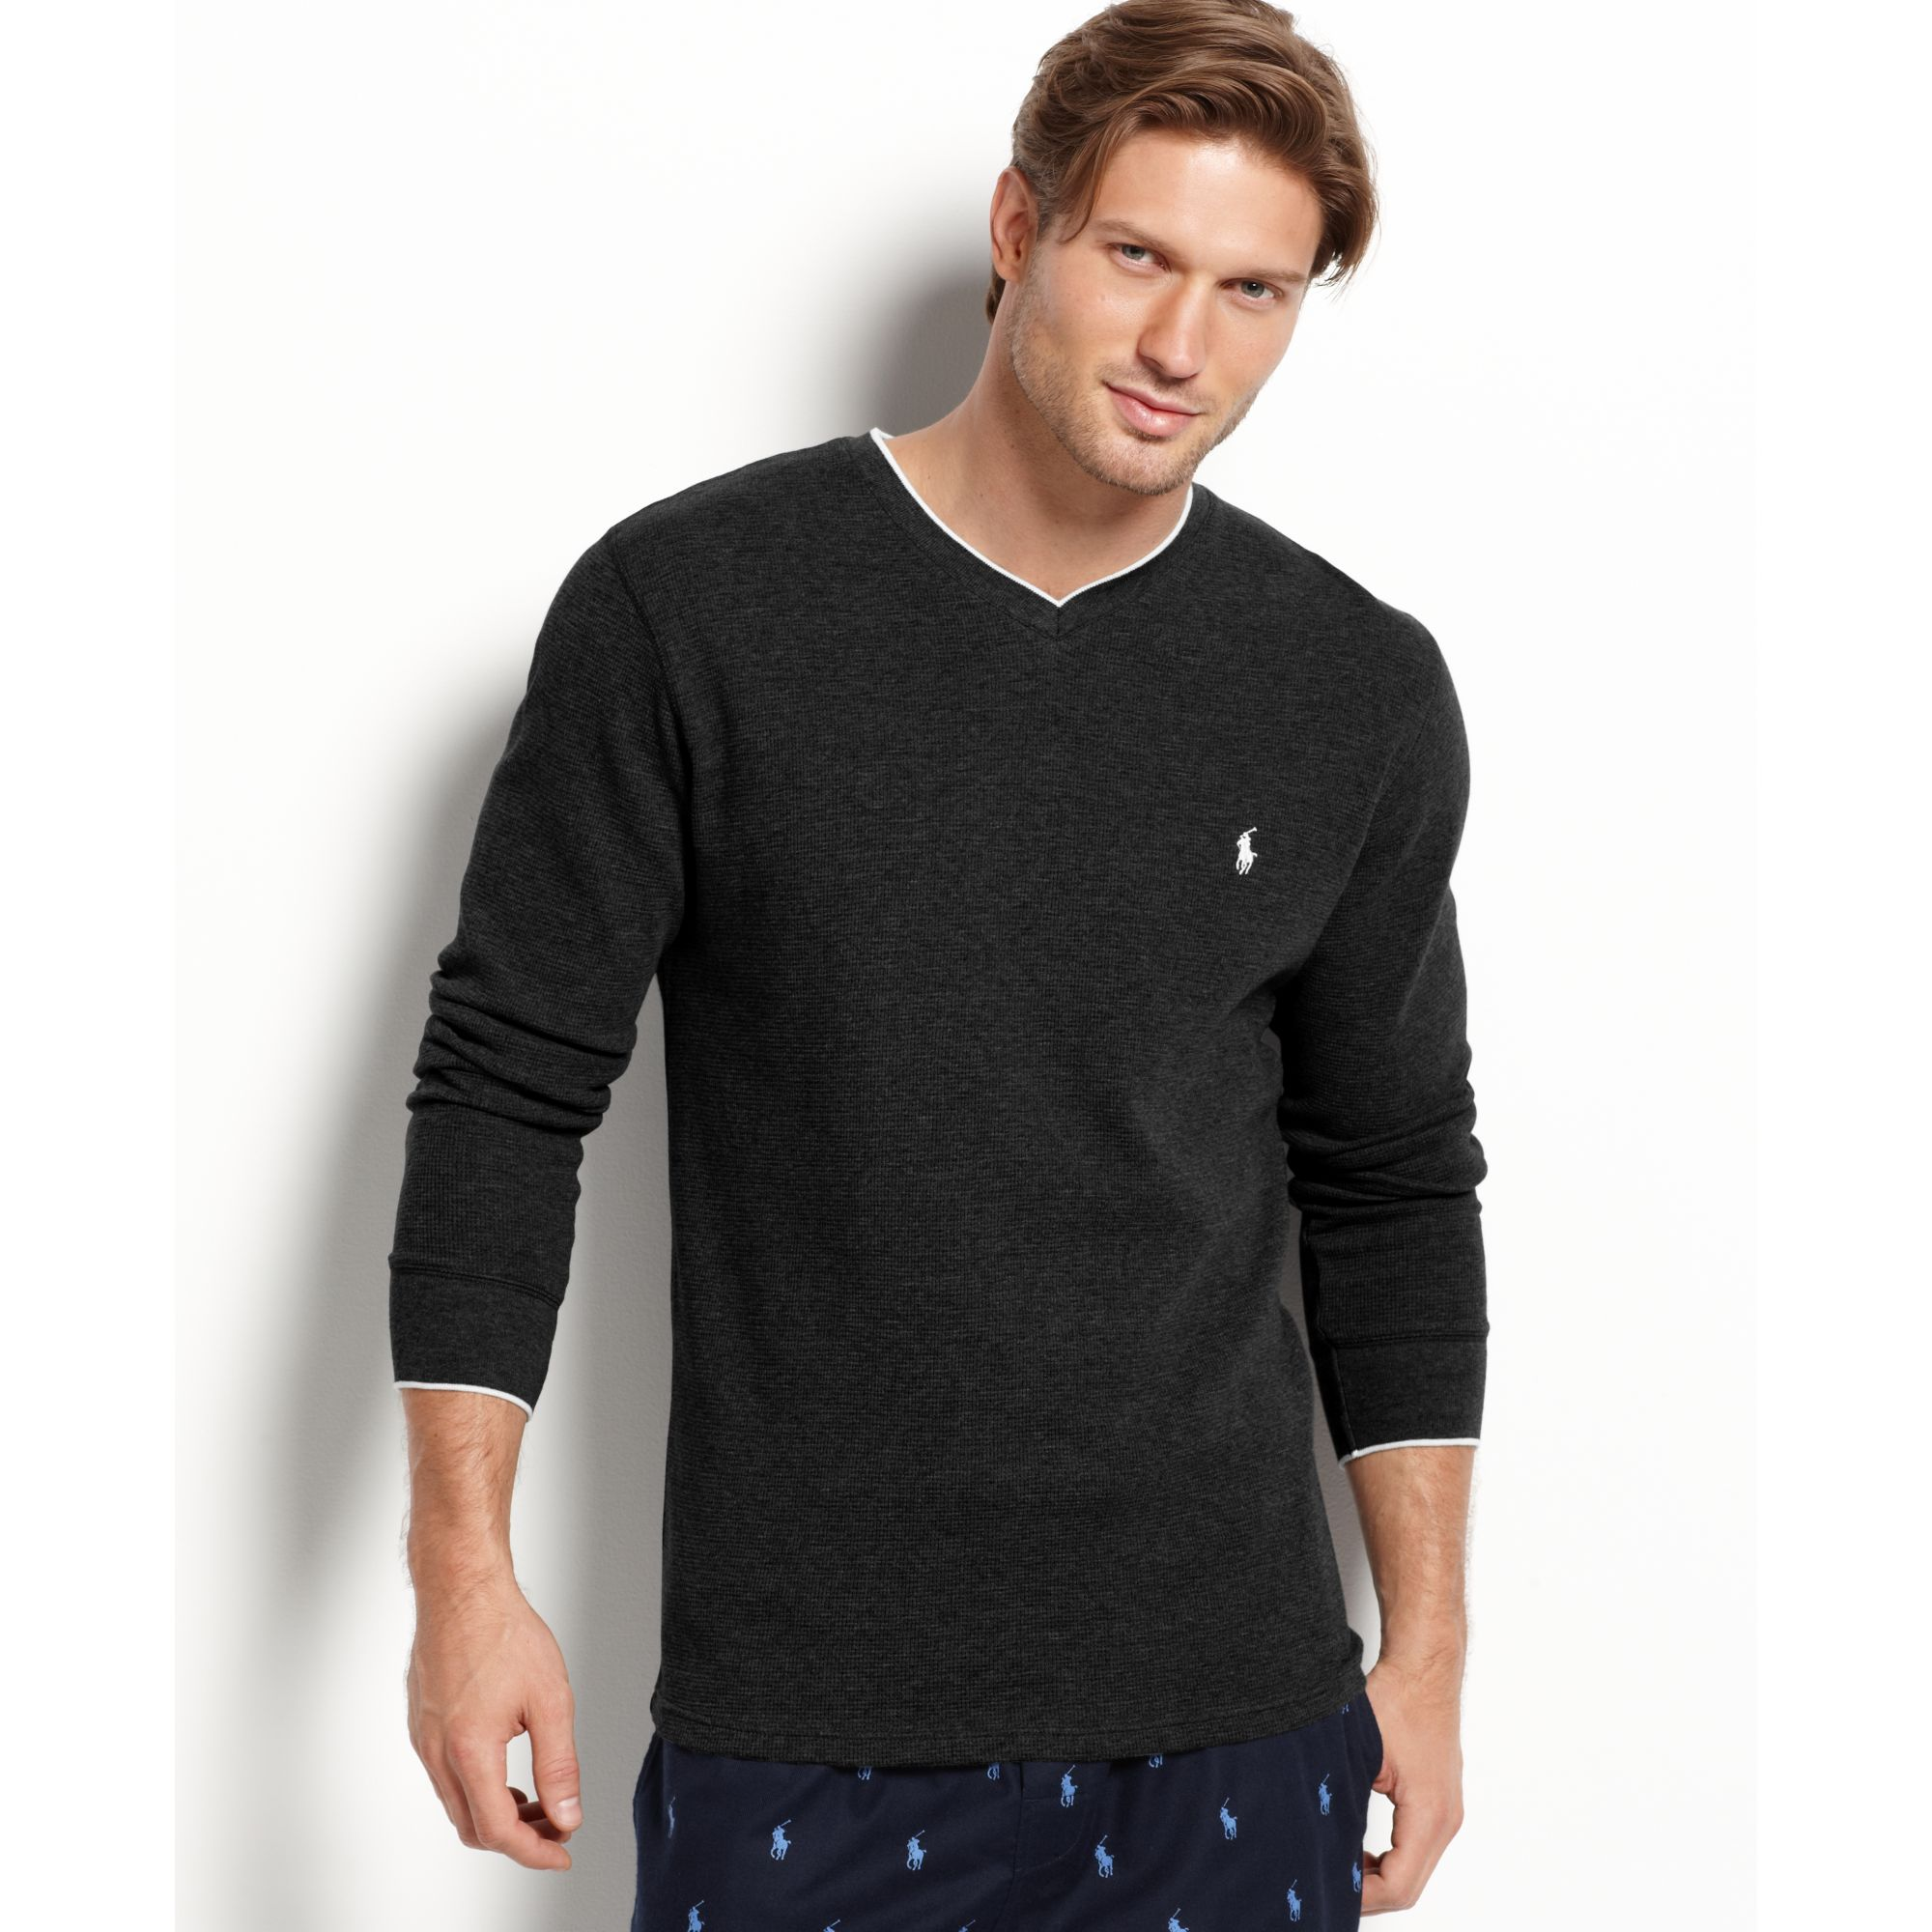 Ralph lauren long sleeve tipped v neck waffle thermal top for Mens black thermal t shirts